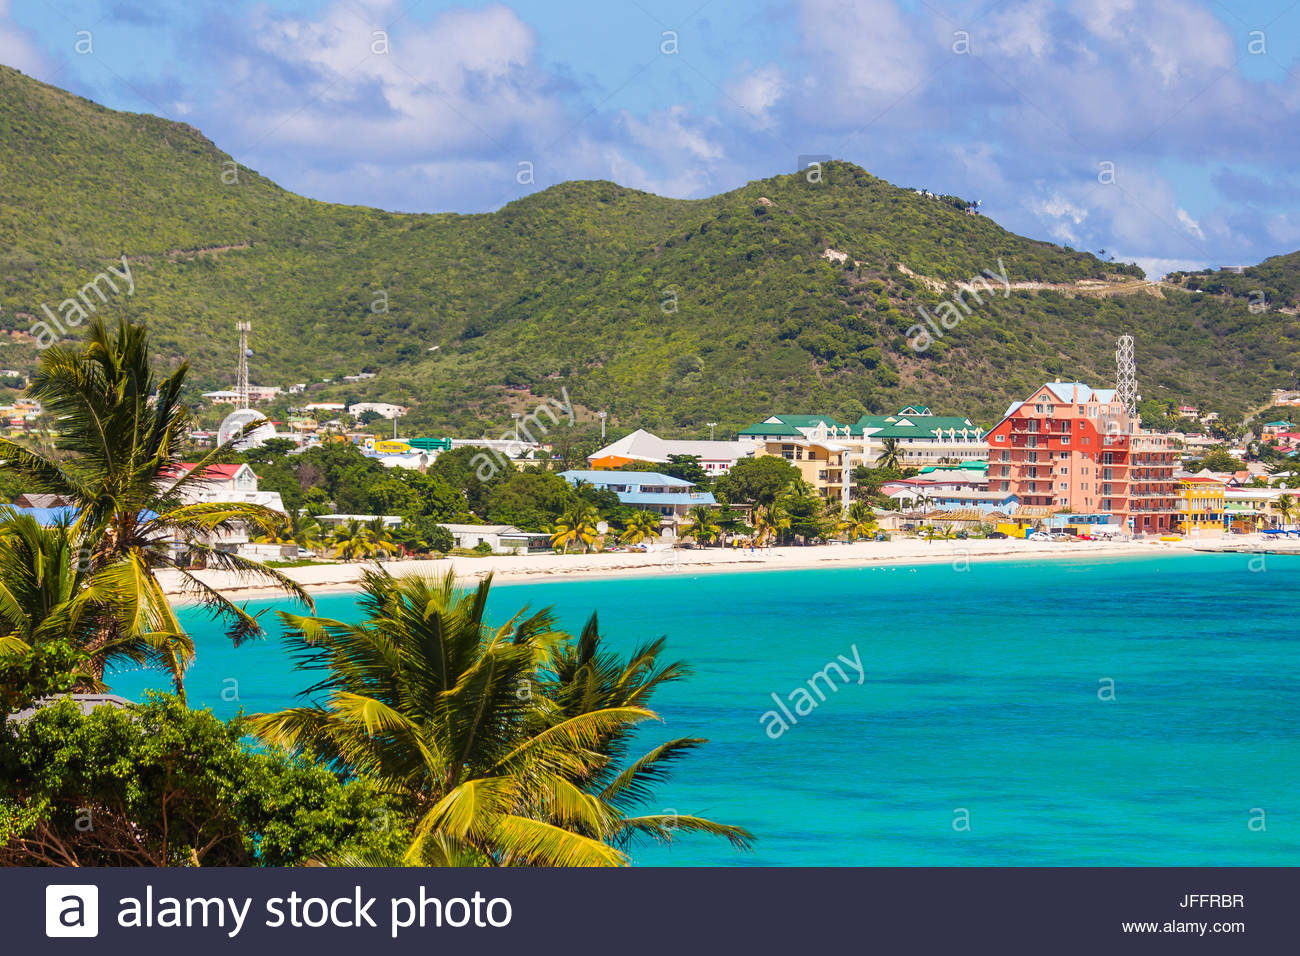 A scenic view of the beaches and city skyline of Philipsburg, the capital of Saint Martin Island. - Stock Image